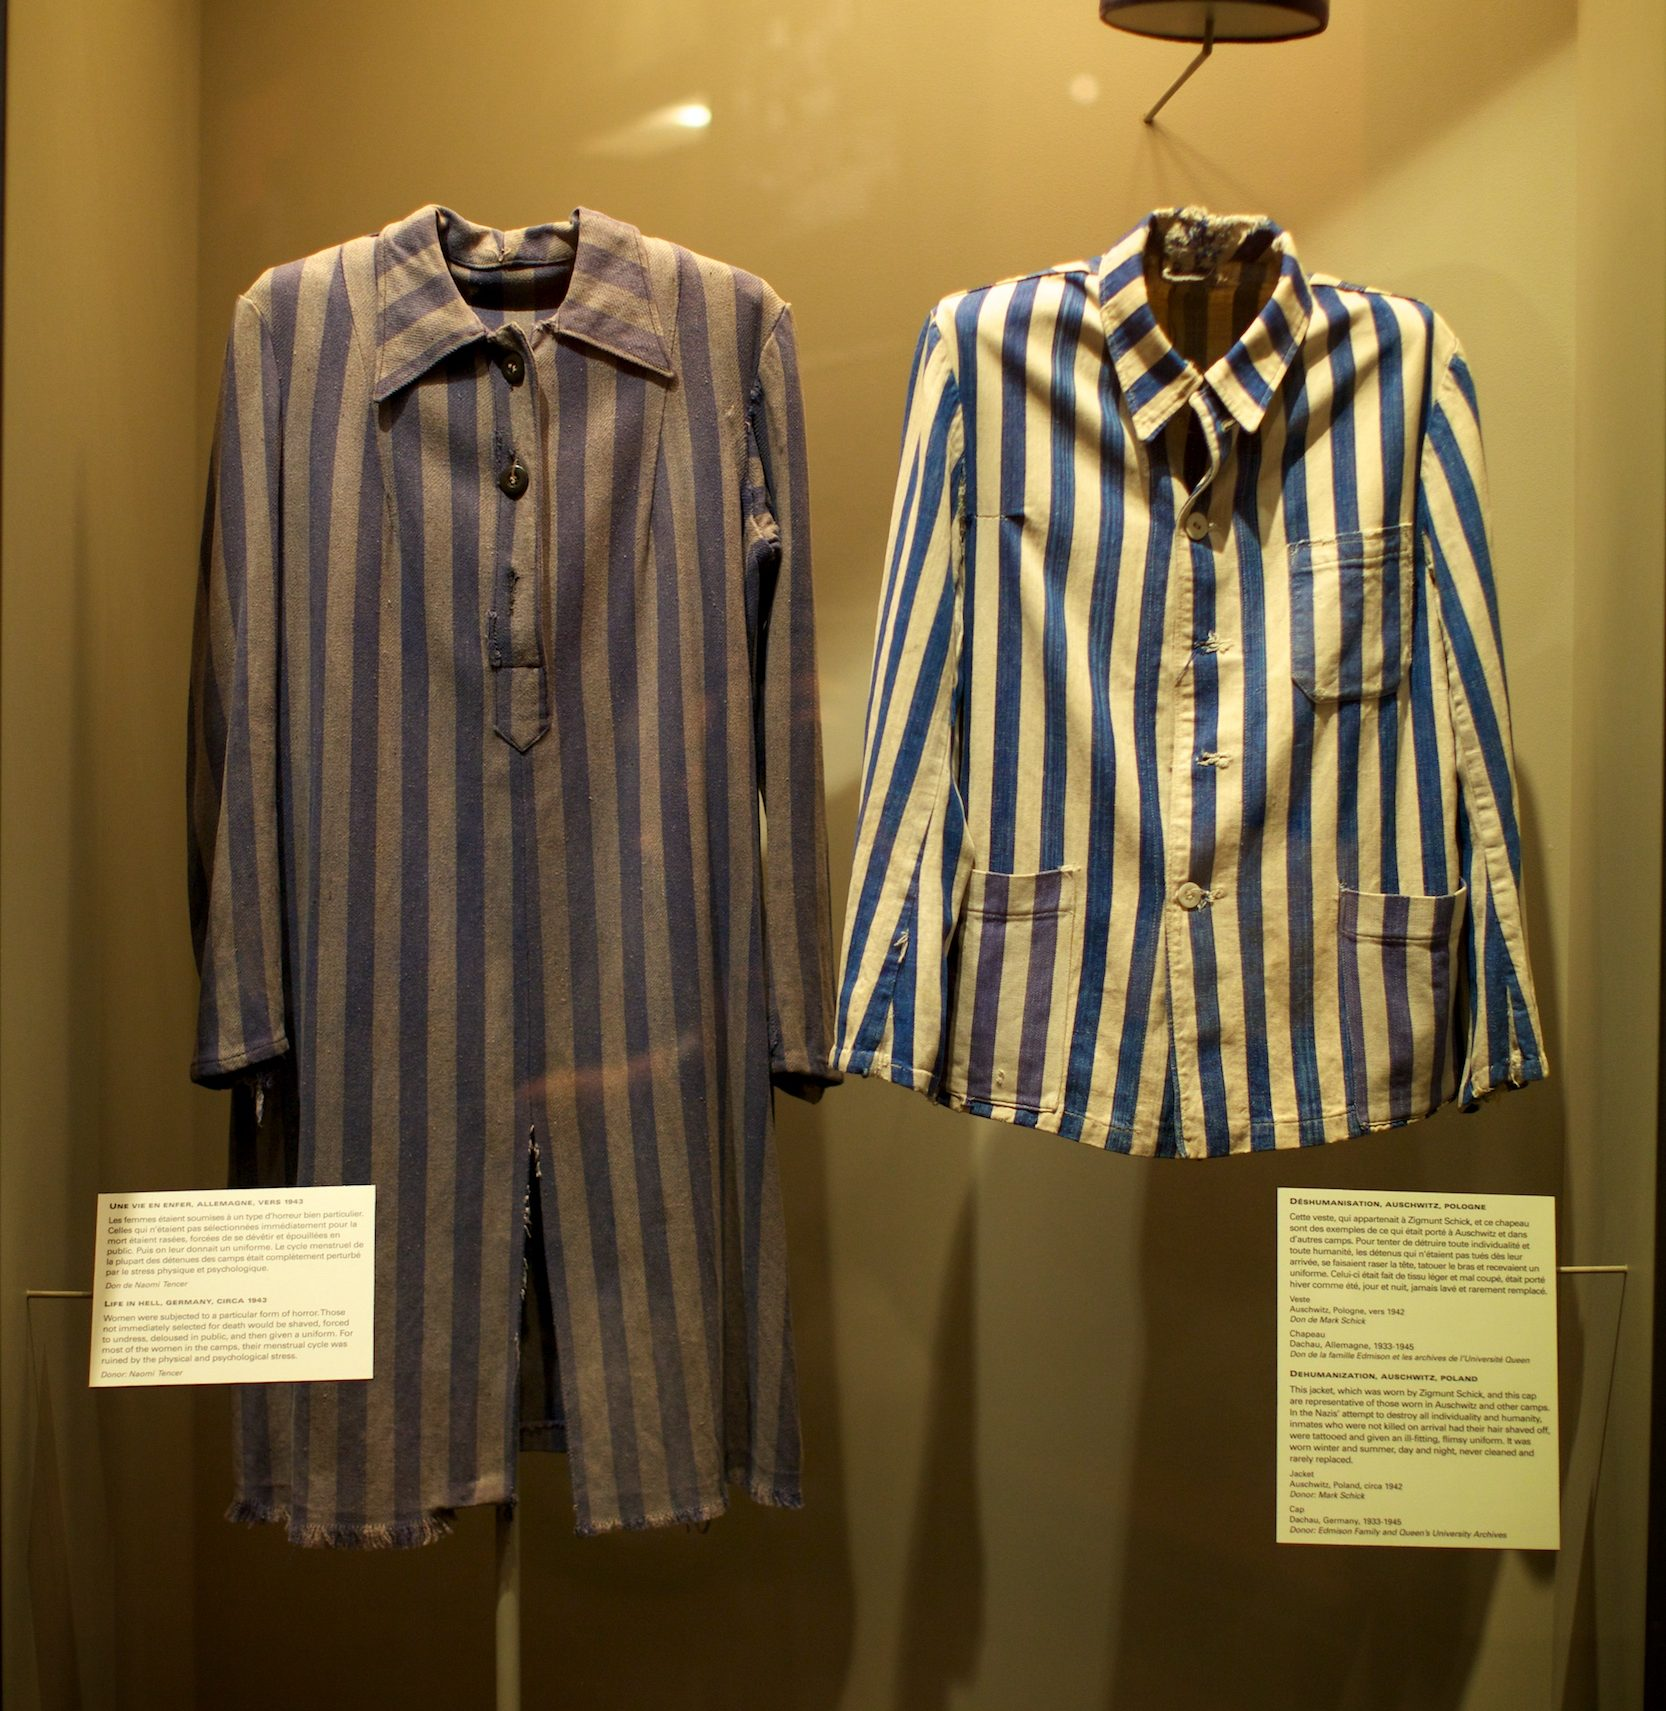 Prisoner uniforms worn by Zigmund Schick in Auschwitz and Sonia Aronowicz in a concentration camp. Poland, 1942-1945. Photo: Vadim Daniel